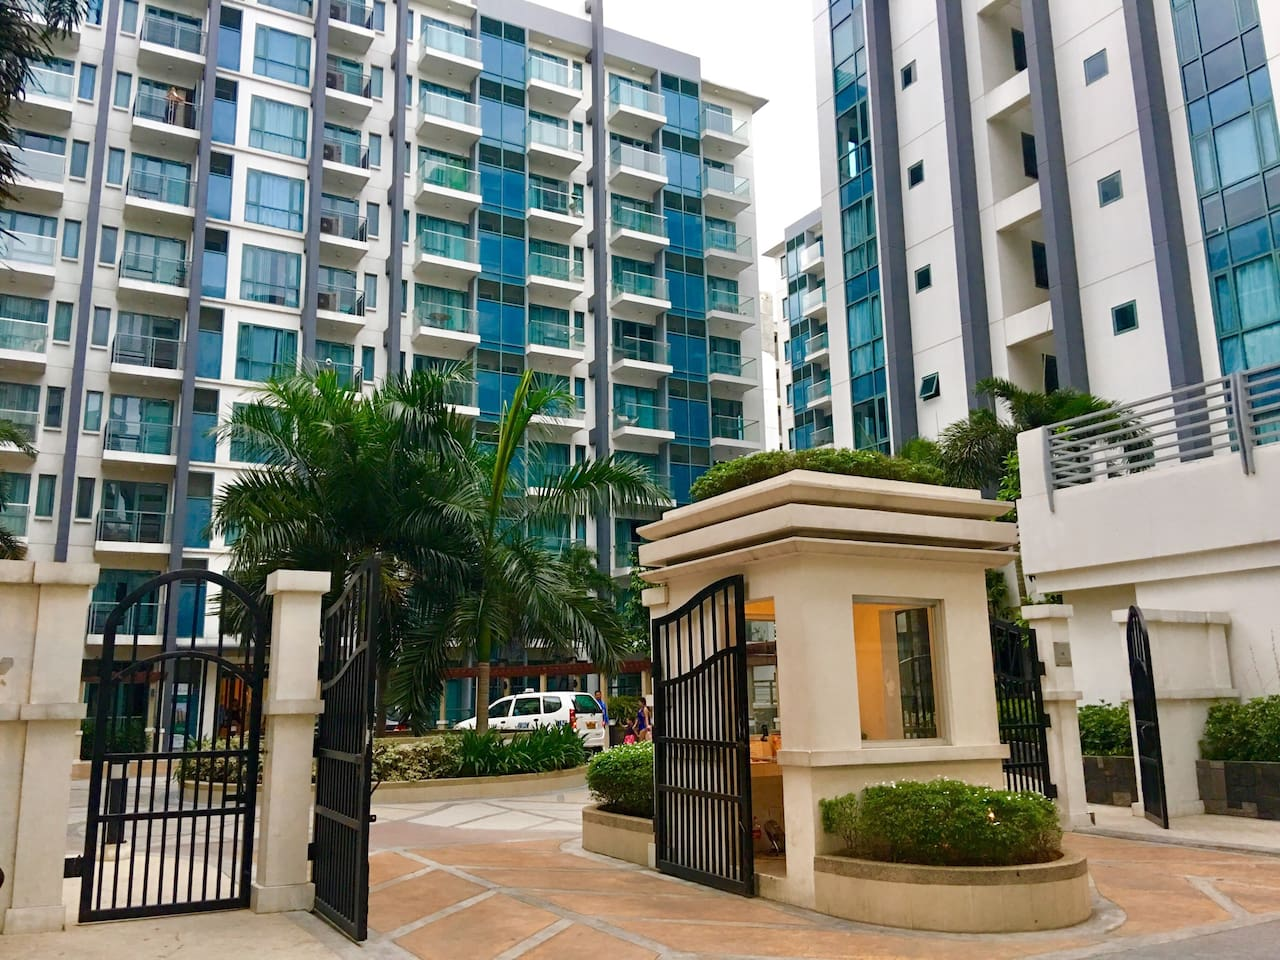 Our studio apartment is located at Palm Tree Villas 2 (gated and with strict security)